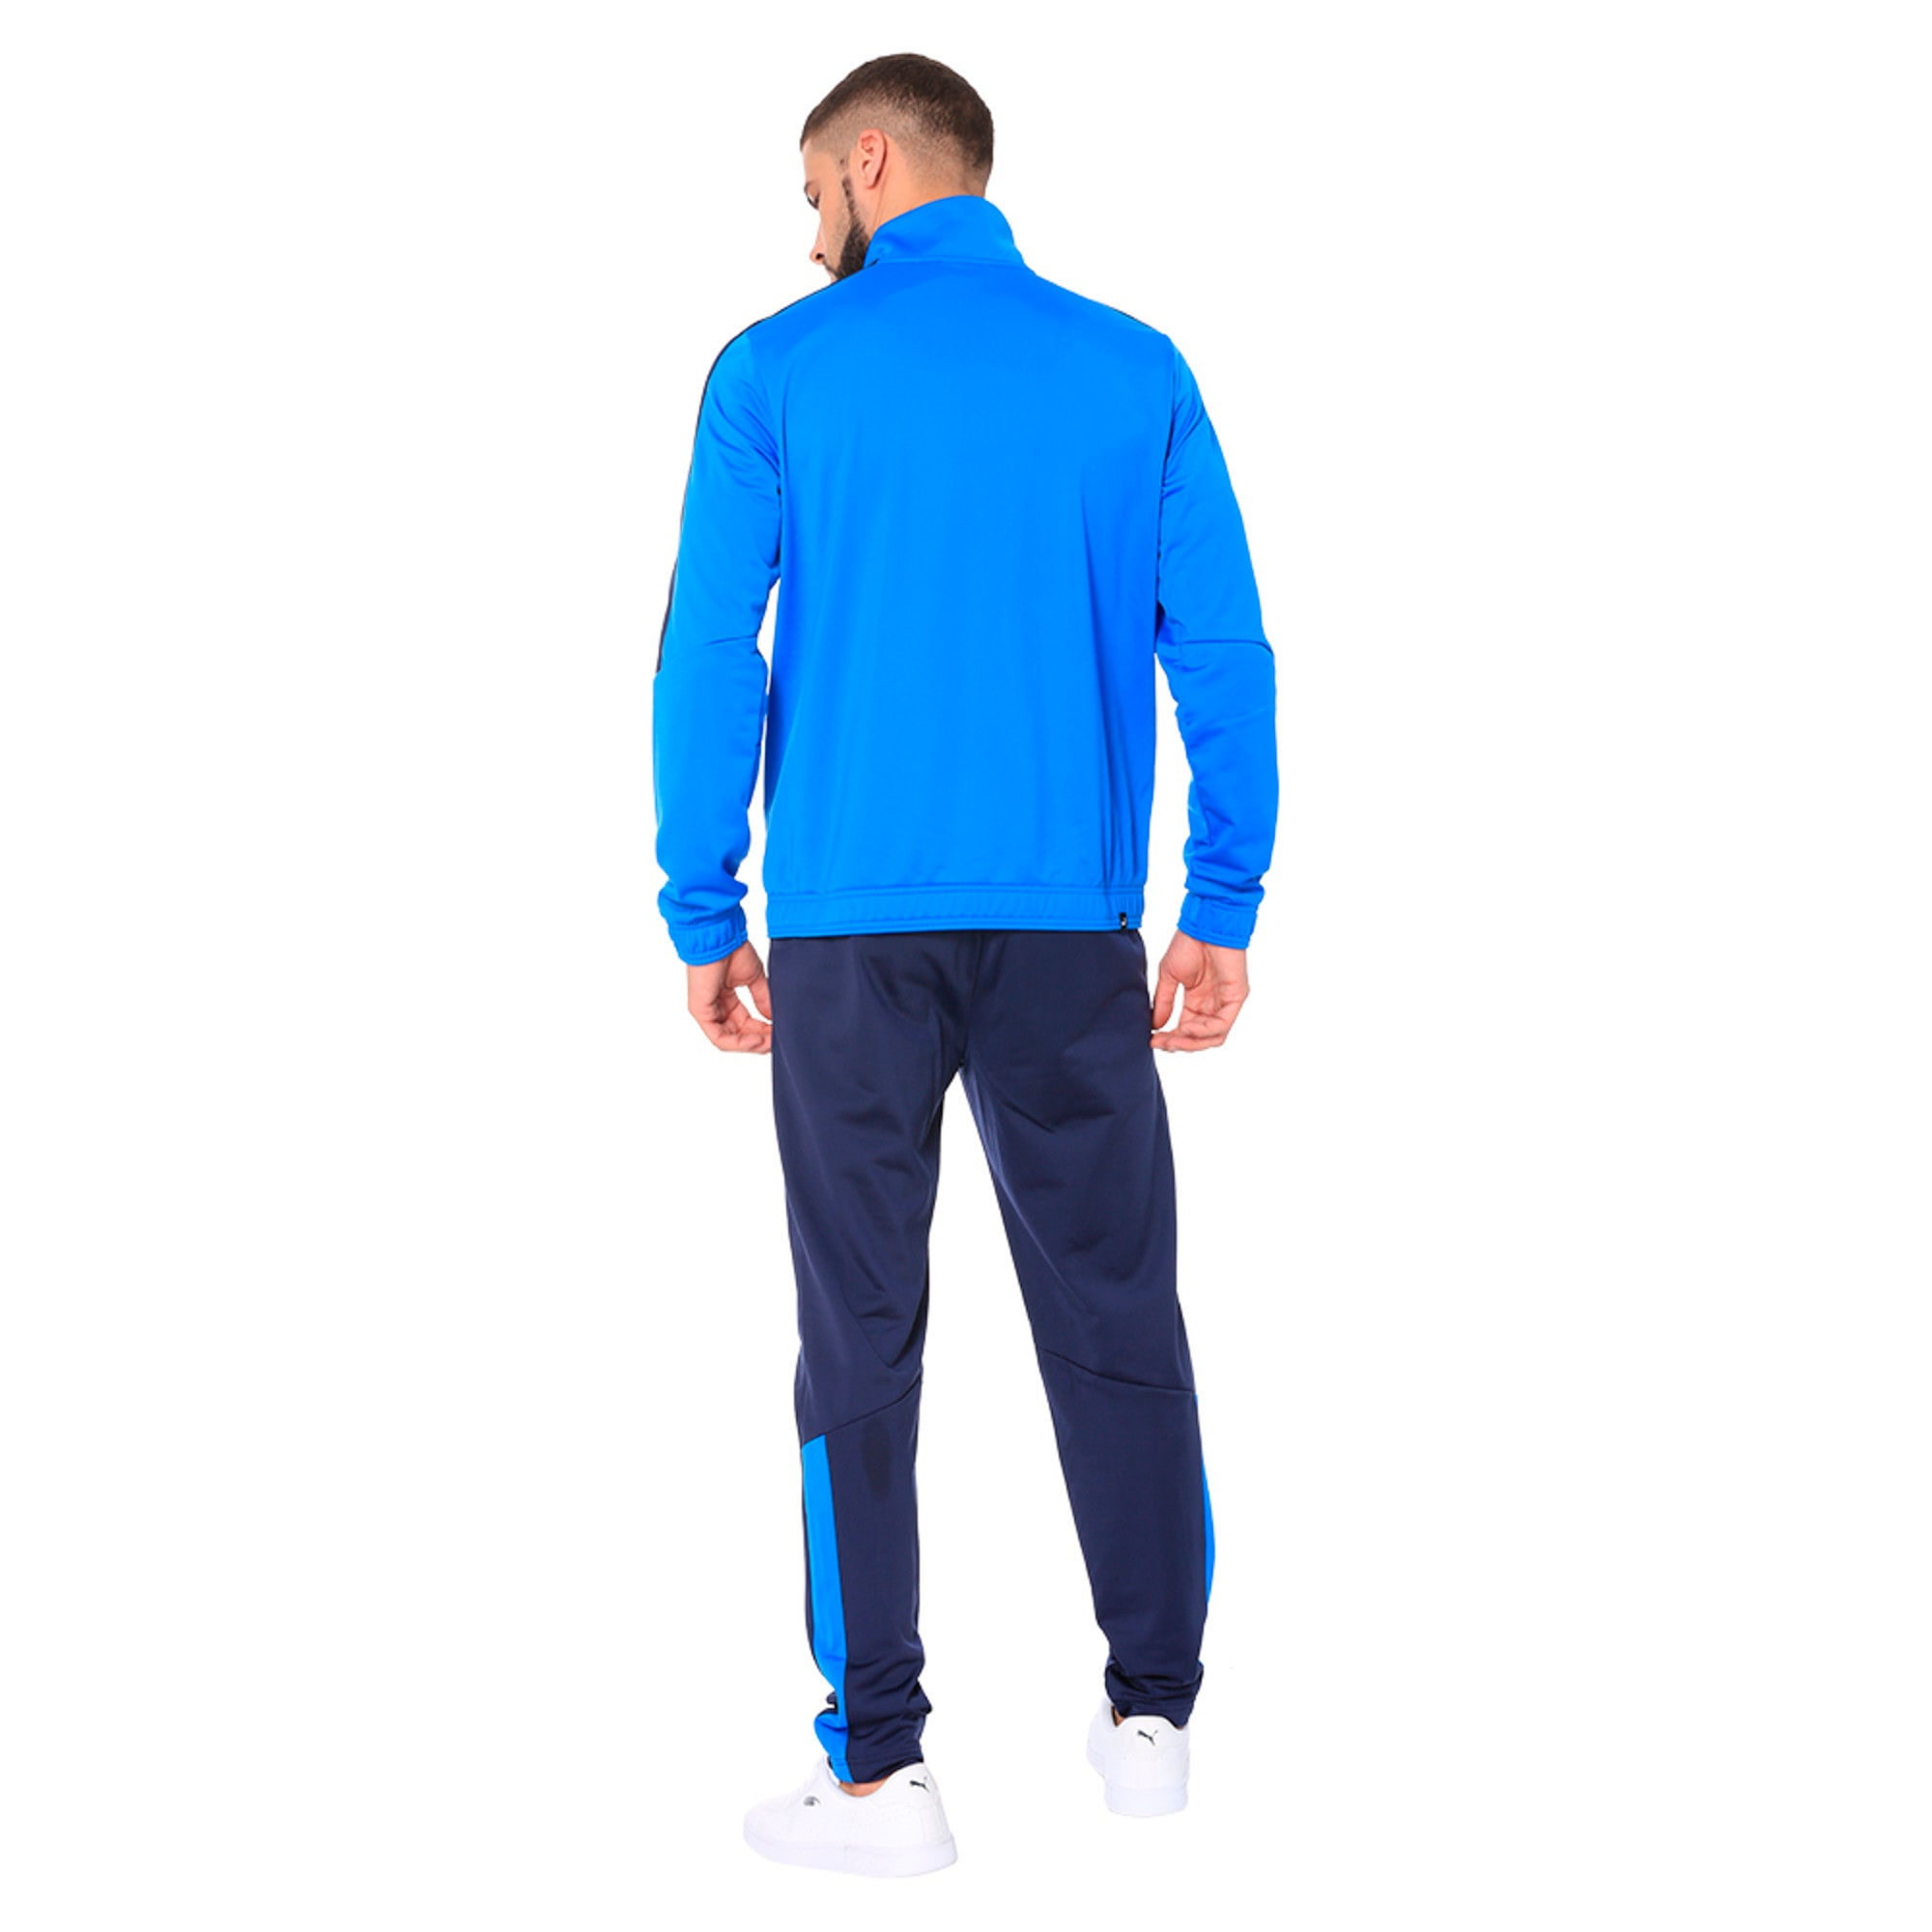 Thumbnail 4 of Techstripe Tricot Suit, Strong Blue-Peacoat, medium-IND